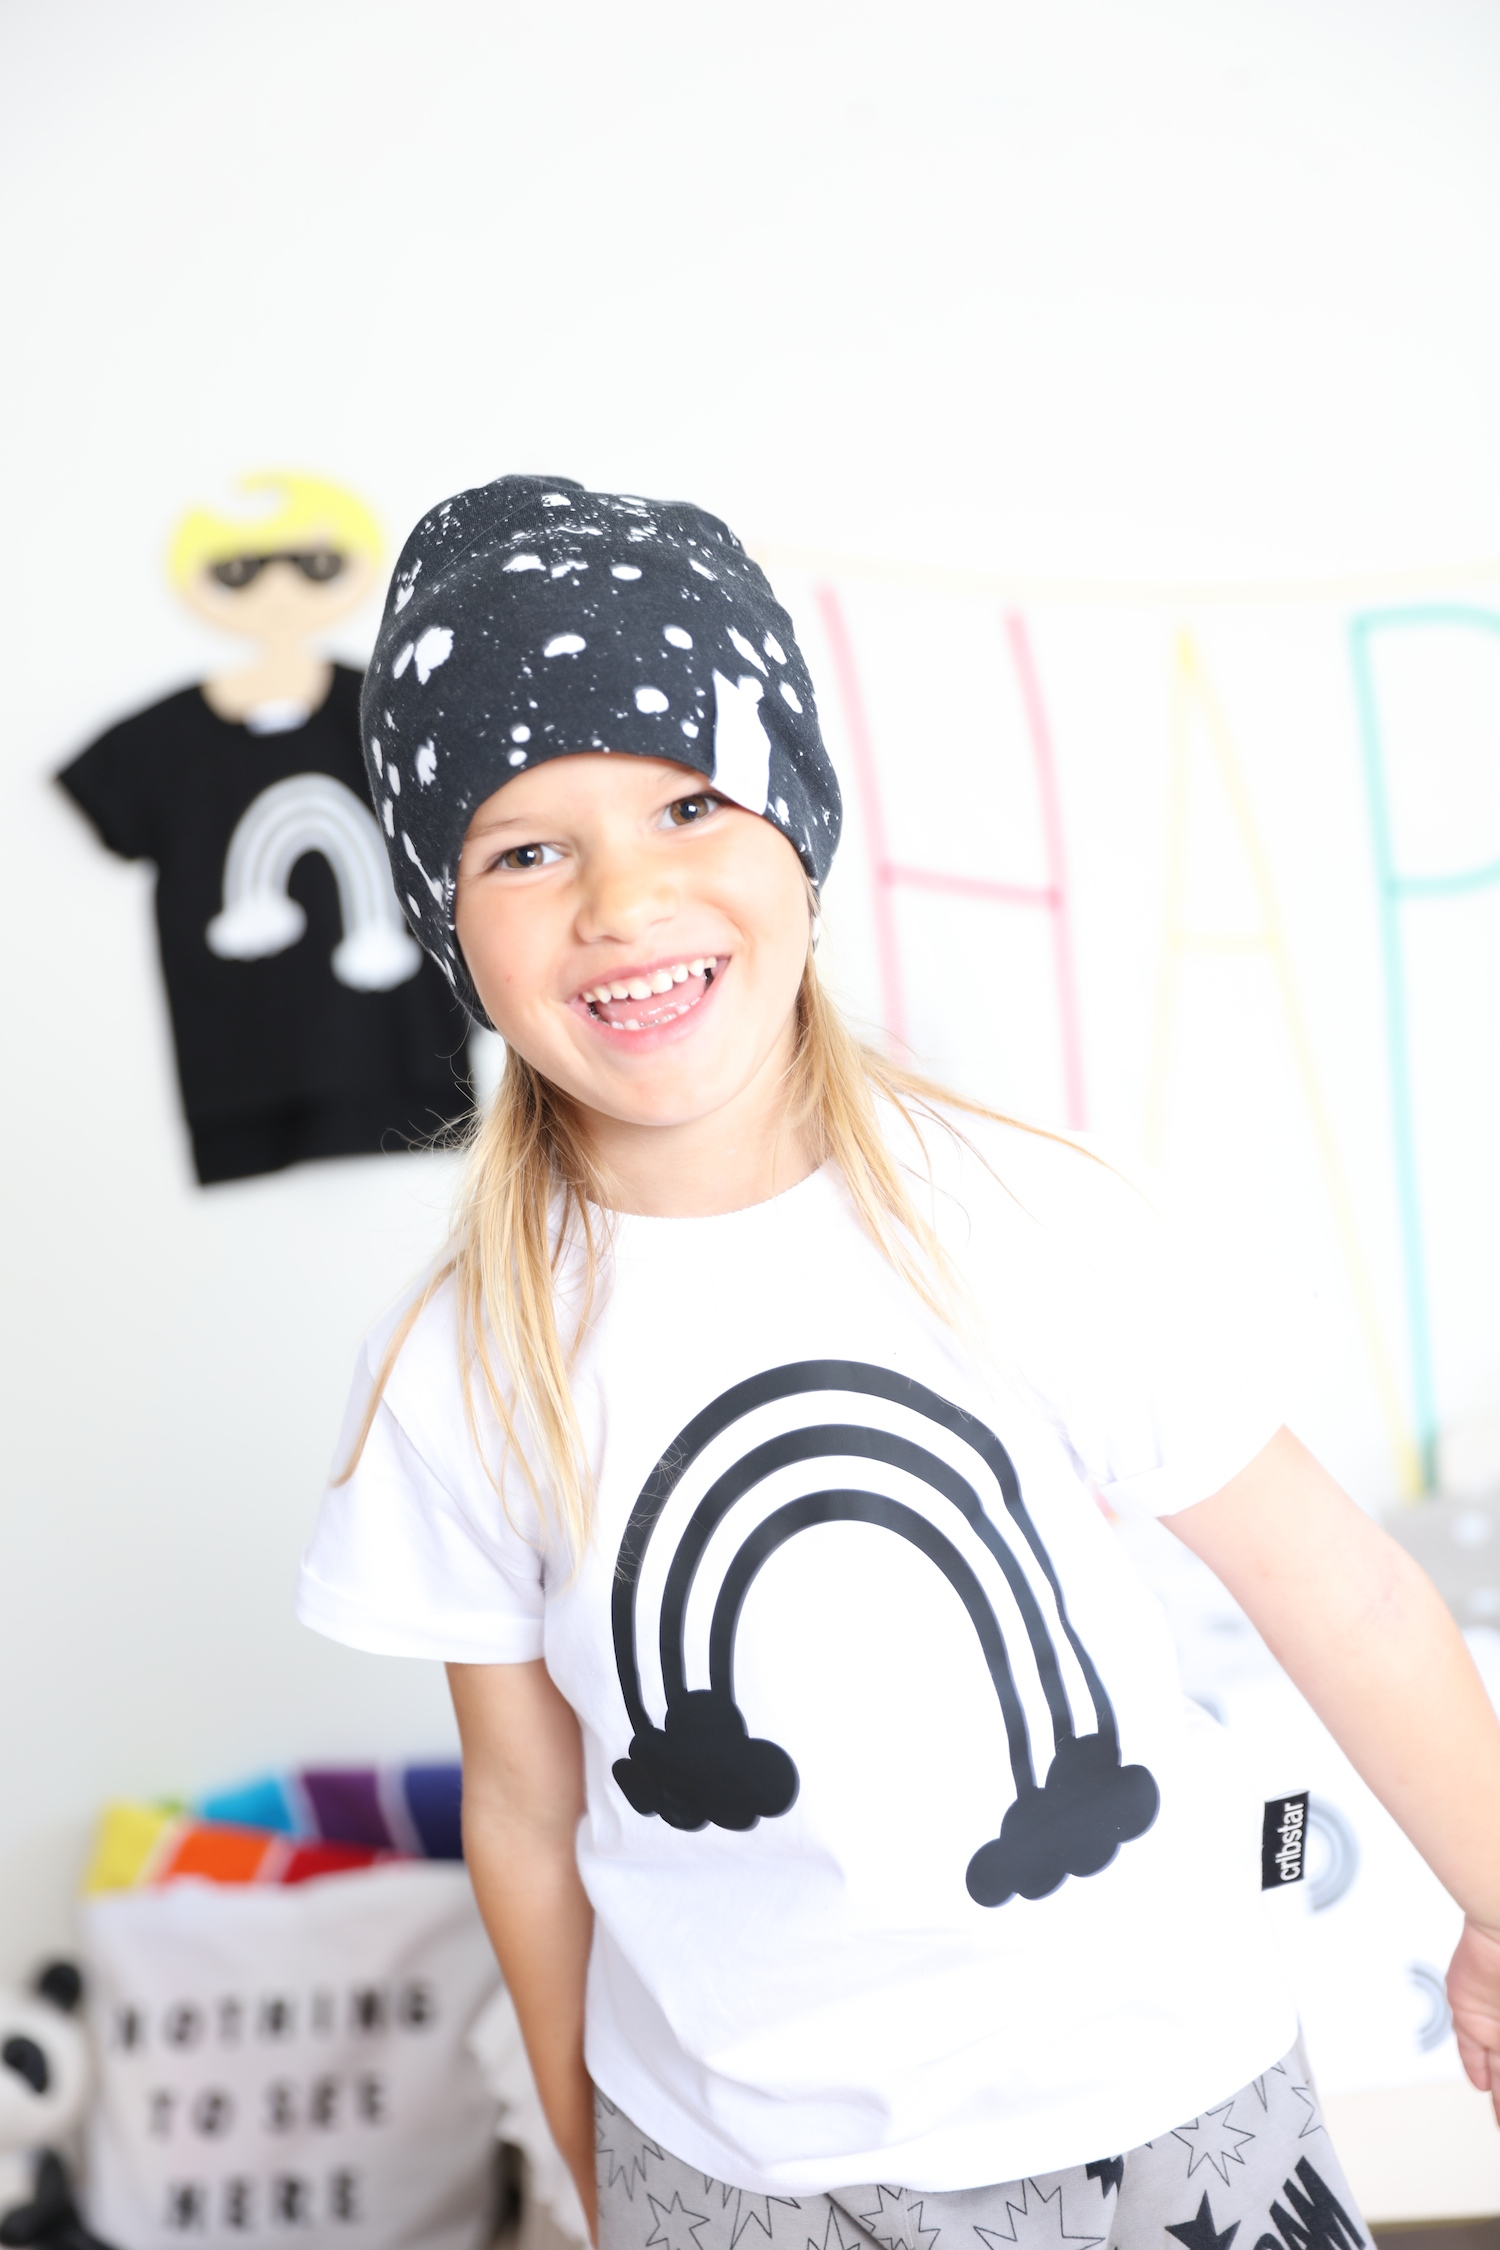 Jaxon_james_rainbow_tshirt_Little_man_happy_hat